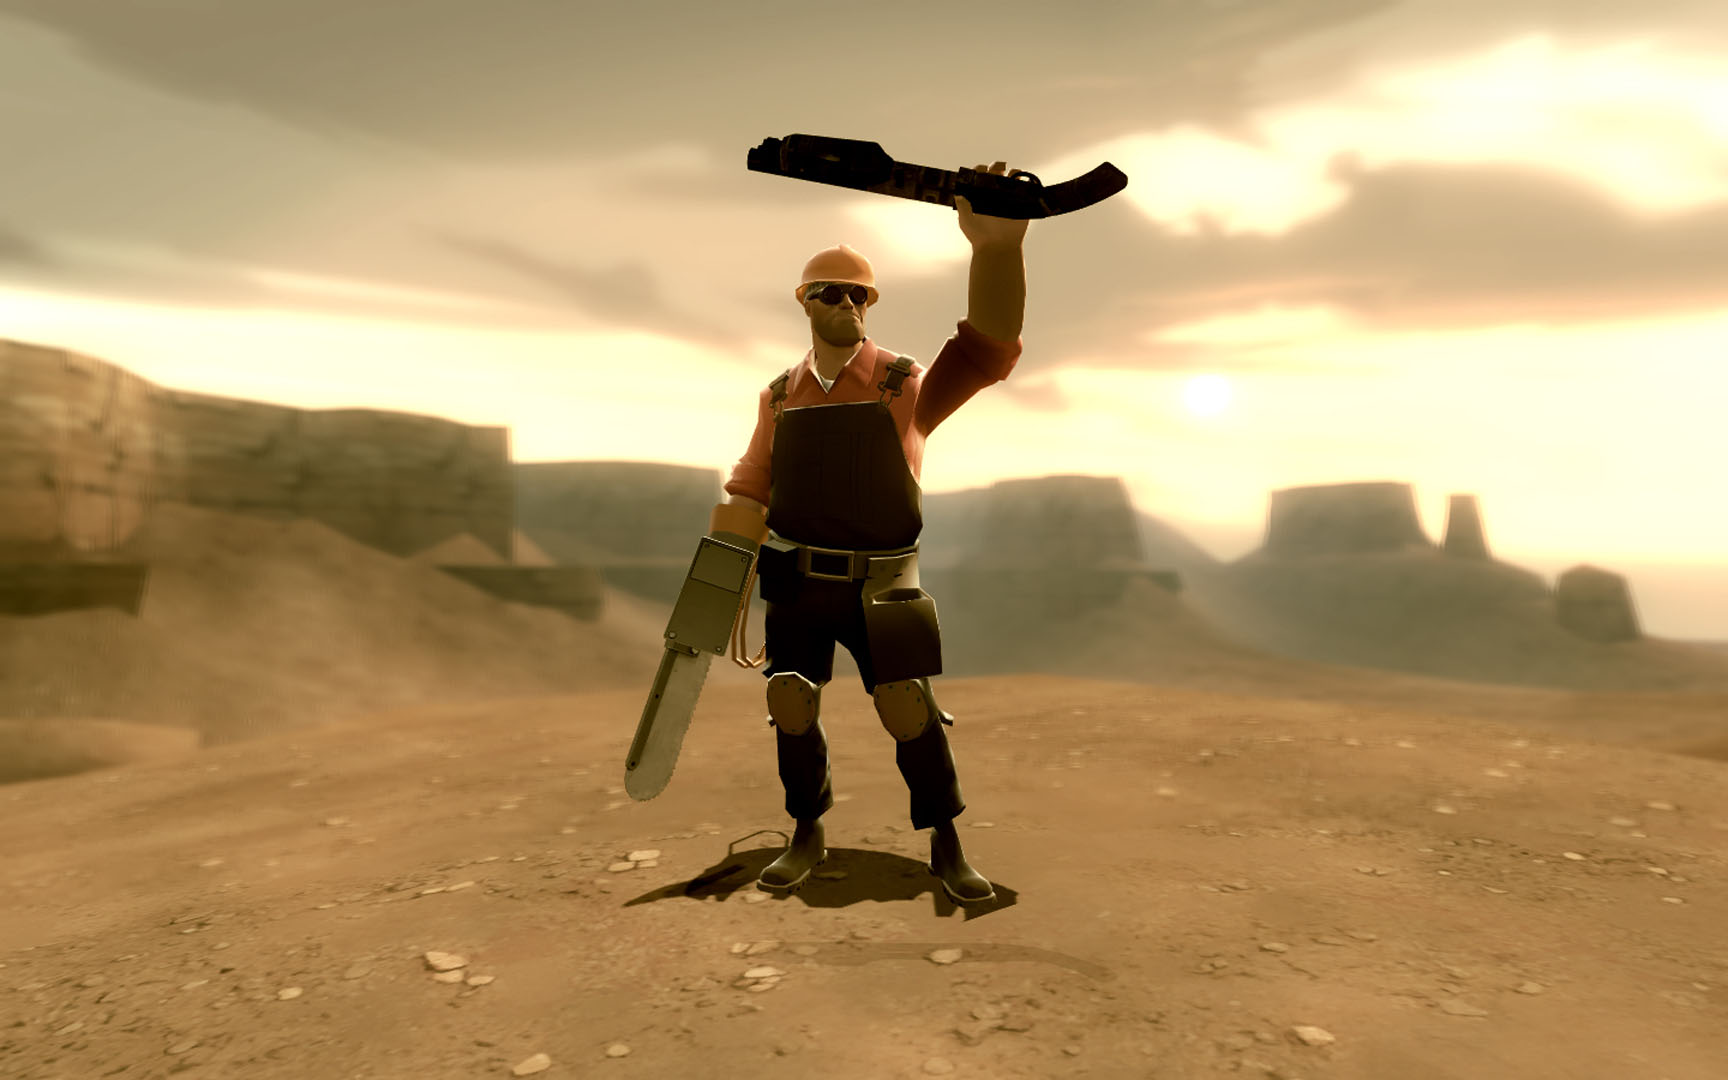 Engineer With Chainsaw - Team Fortress 2 Wallpaper